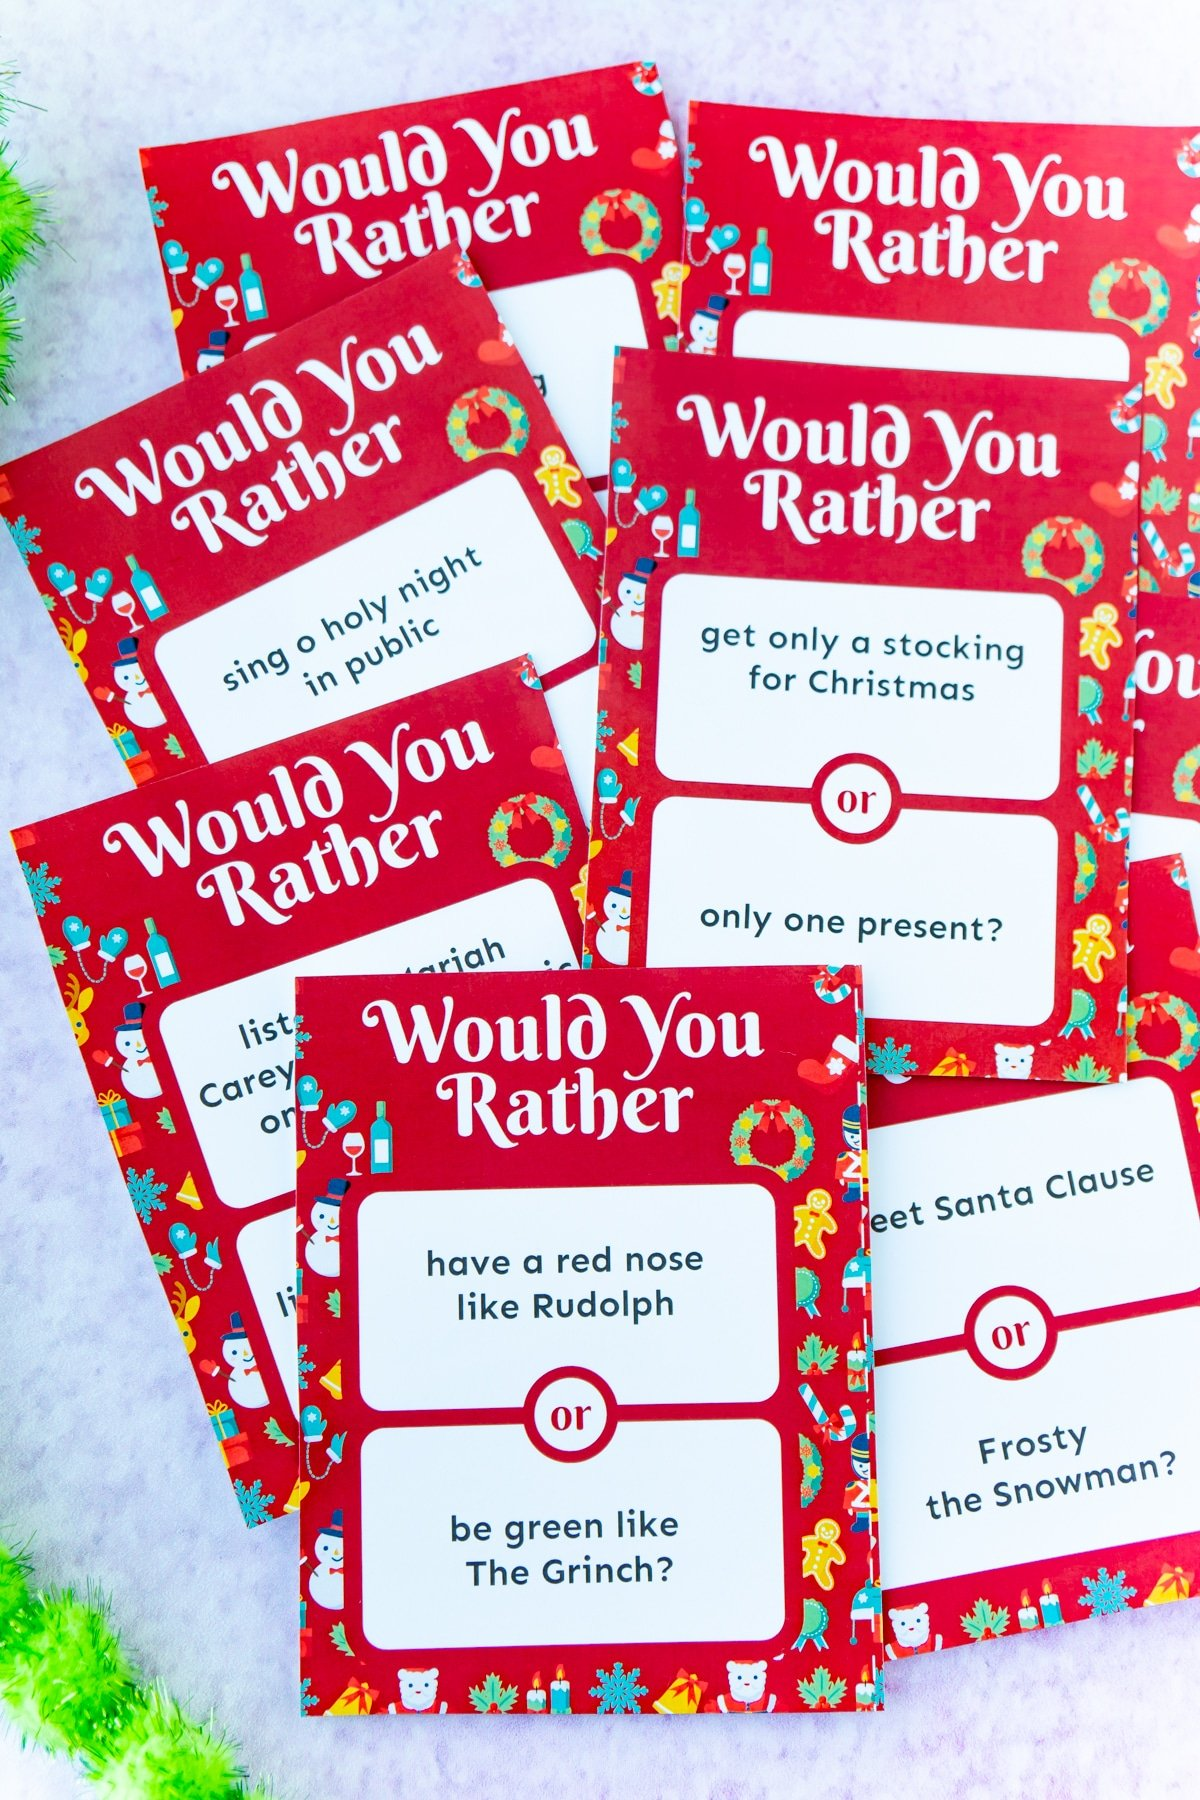 Christmas would you rather questions in a pile